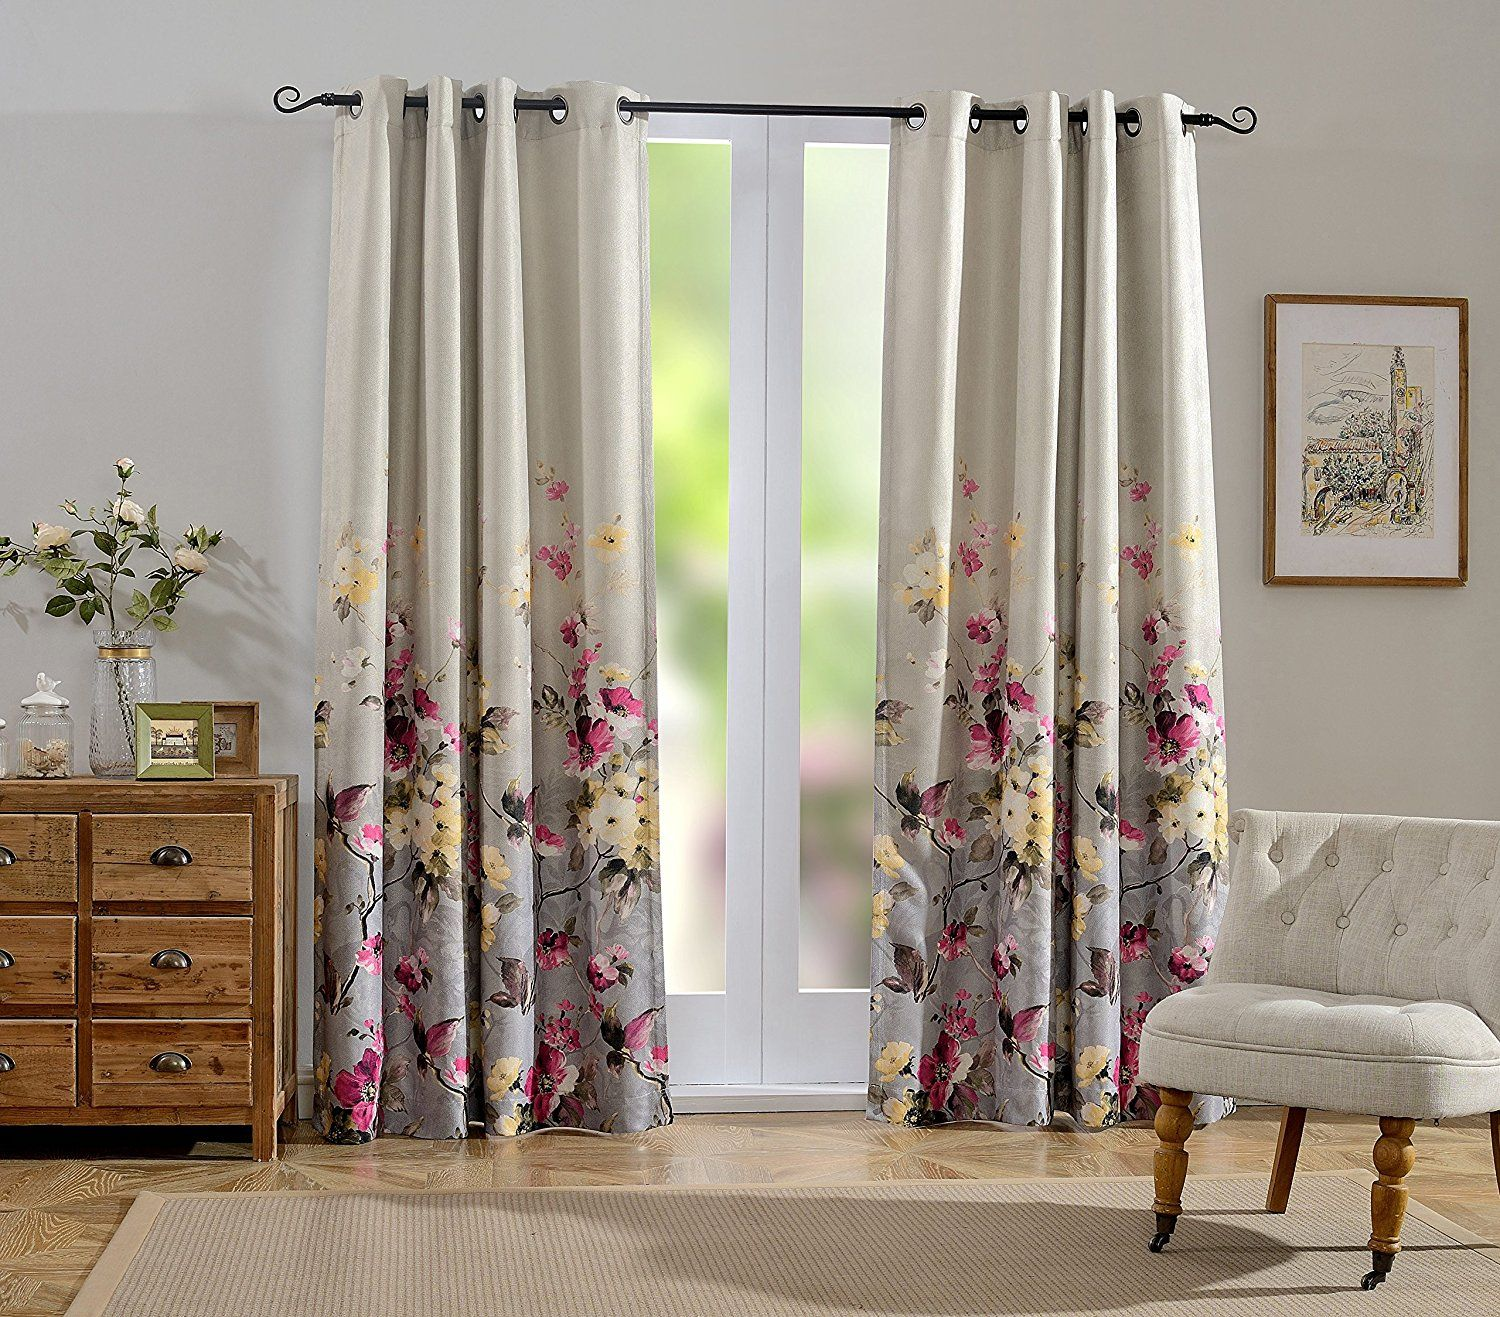 Mysky Home Floral Design Print Grommet Top Thermal Insulated Faux Linen Room Darkening Curtains For Livin Curtains Living Room Curtains Room Darkening Curtains